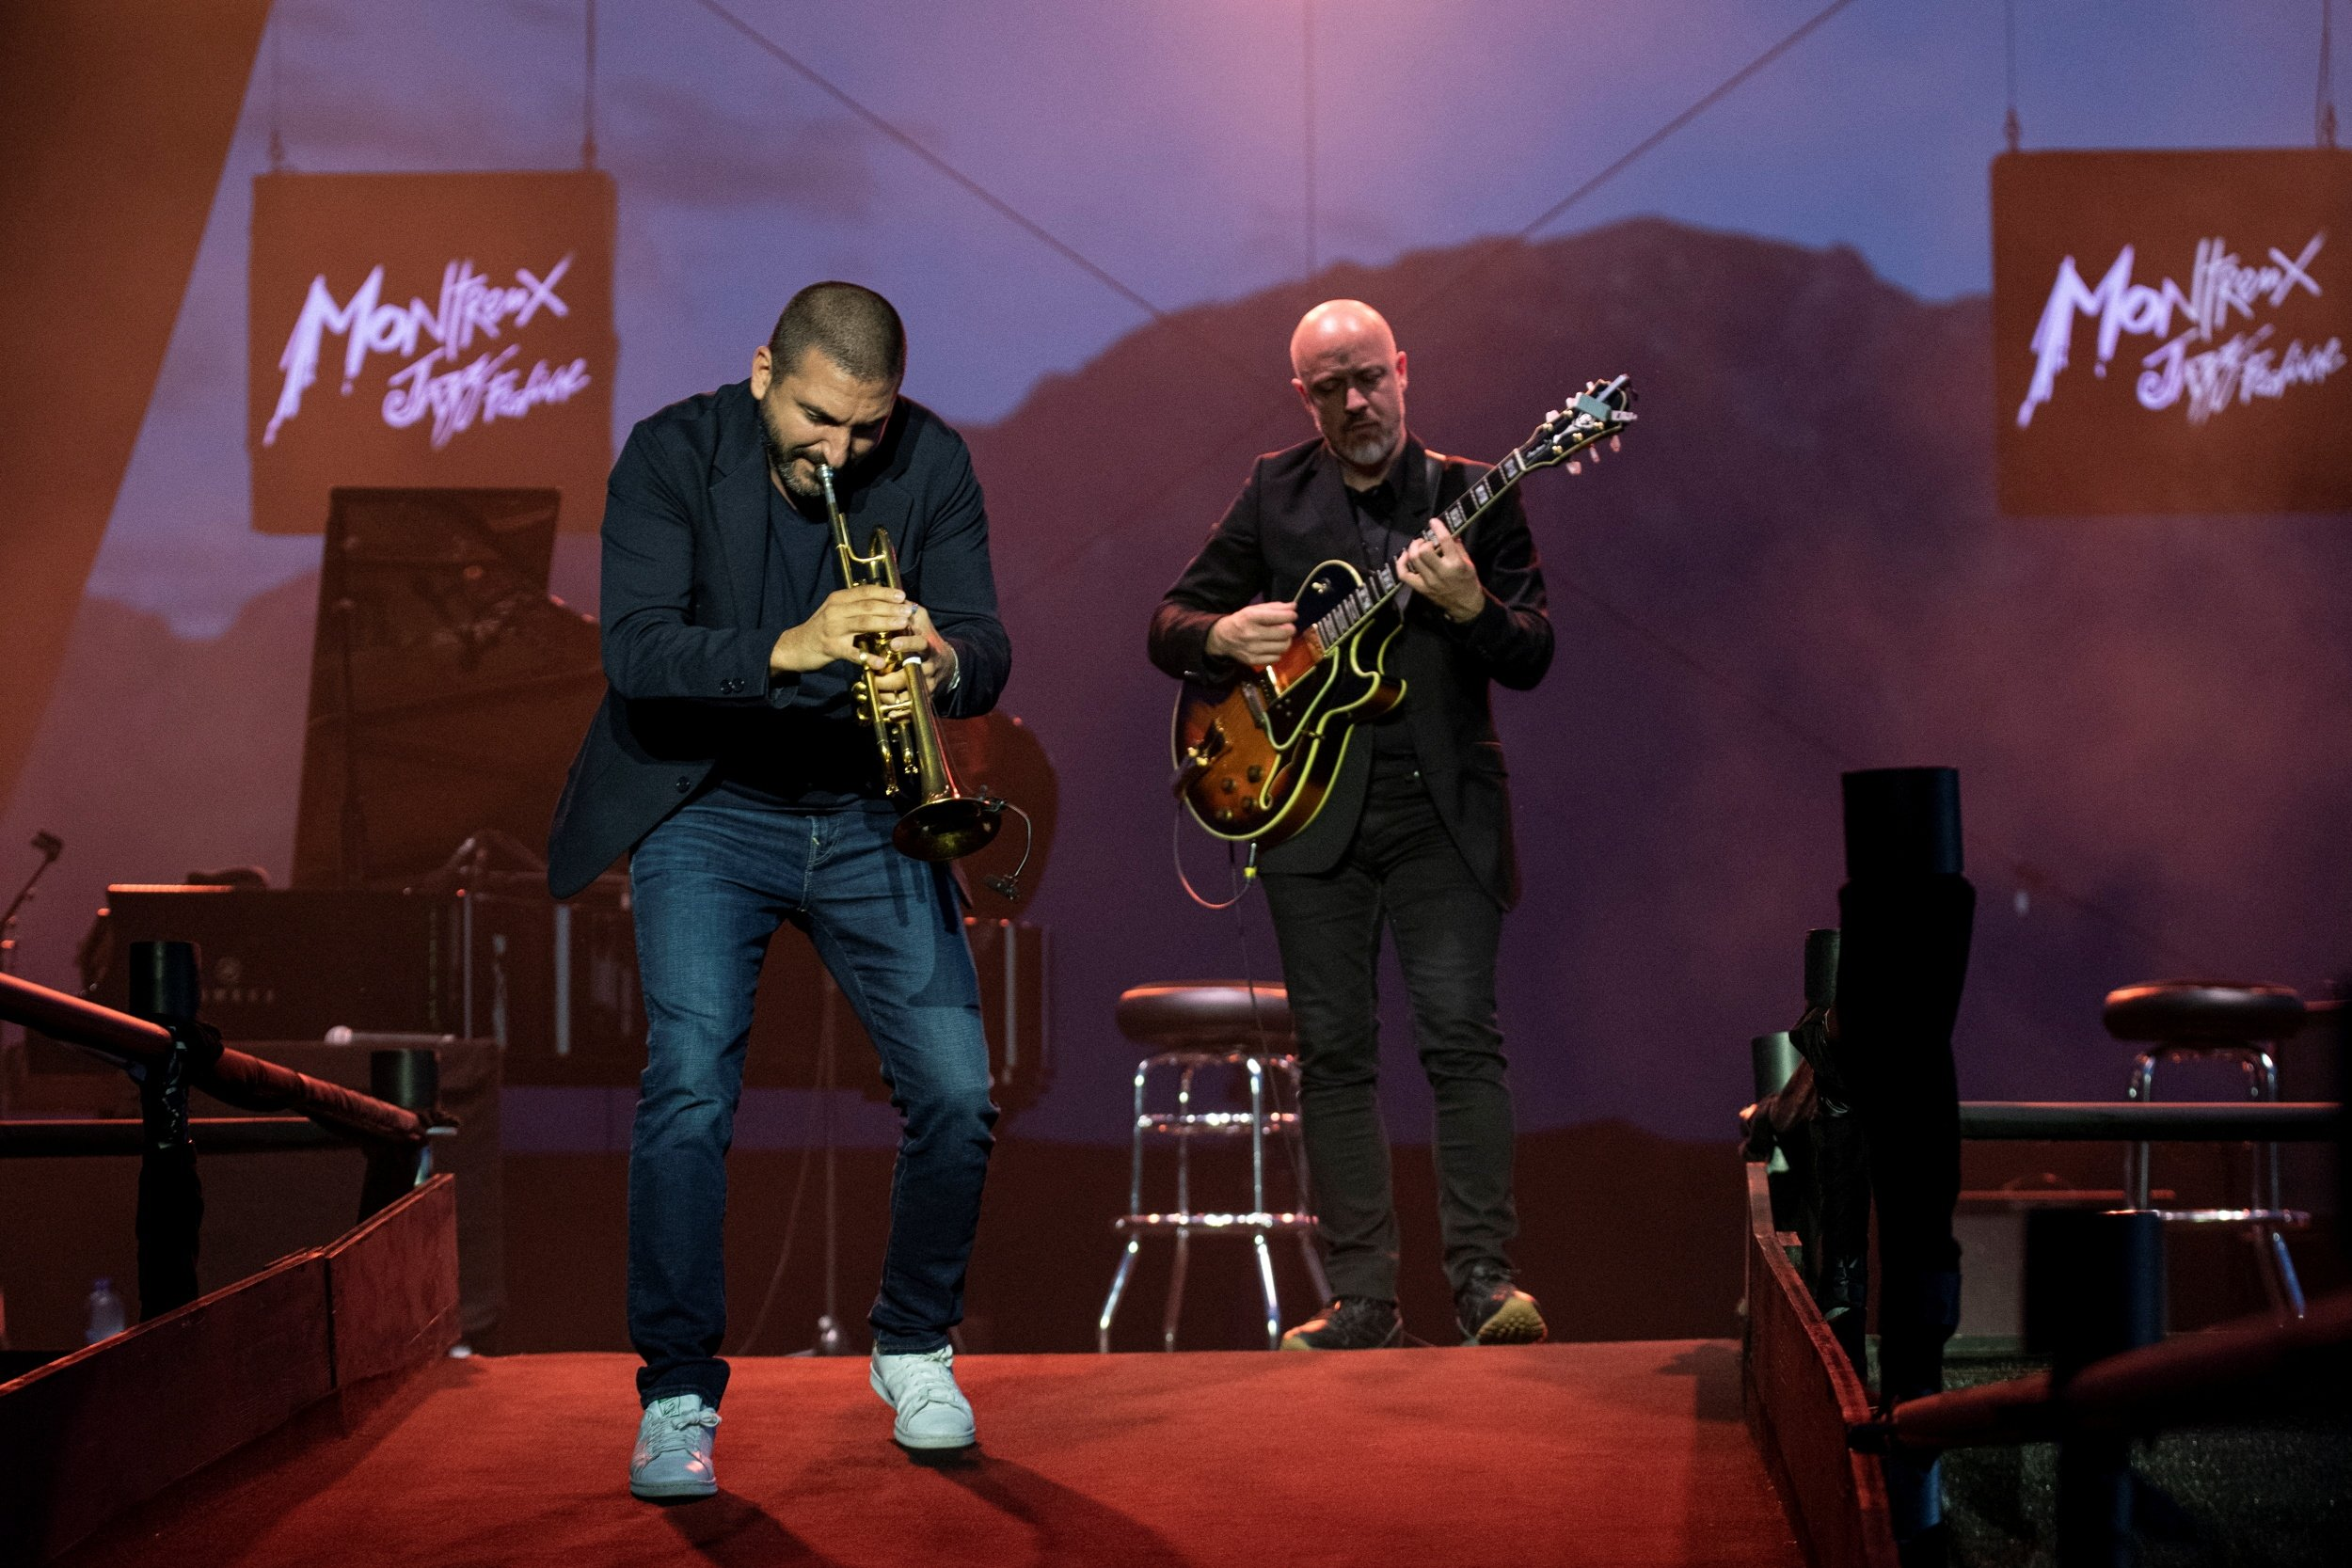 French-Lebanese trumpeter Ibrahim Maalouf (L) and Belgian guitar player Francois Delporte perform for a limited number of fans during the 55th Montreux Jazz Festival in Montreux, Switzerland, July 5, 2021. (Reuters Photo)